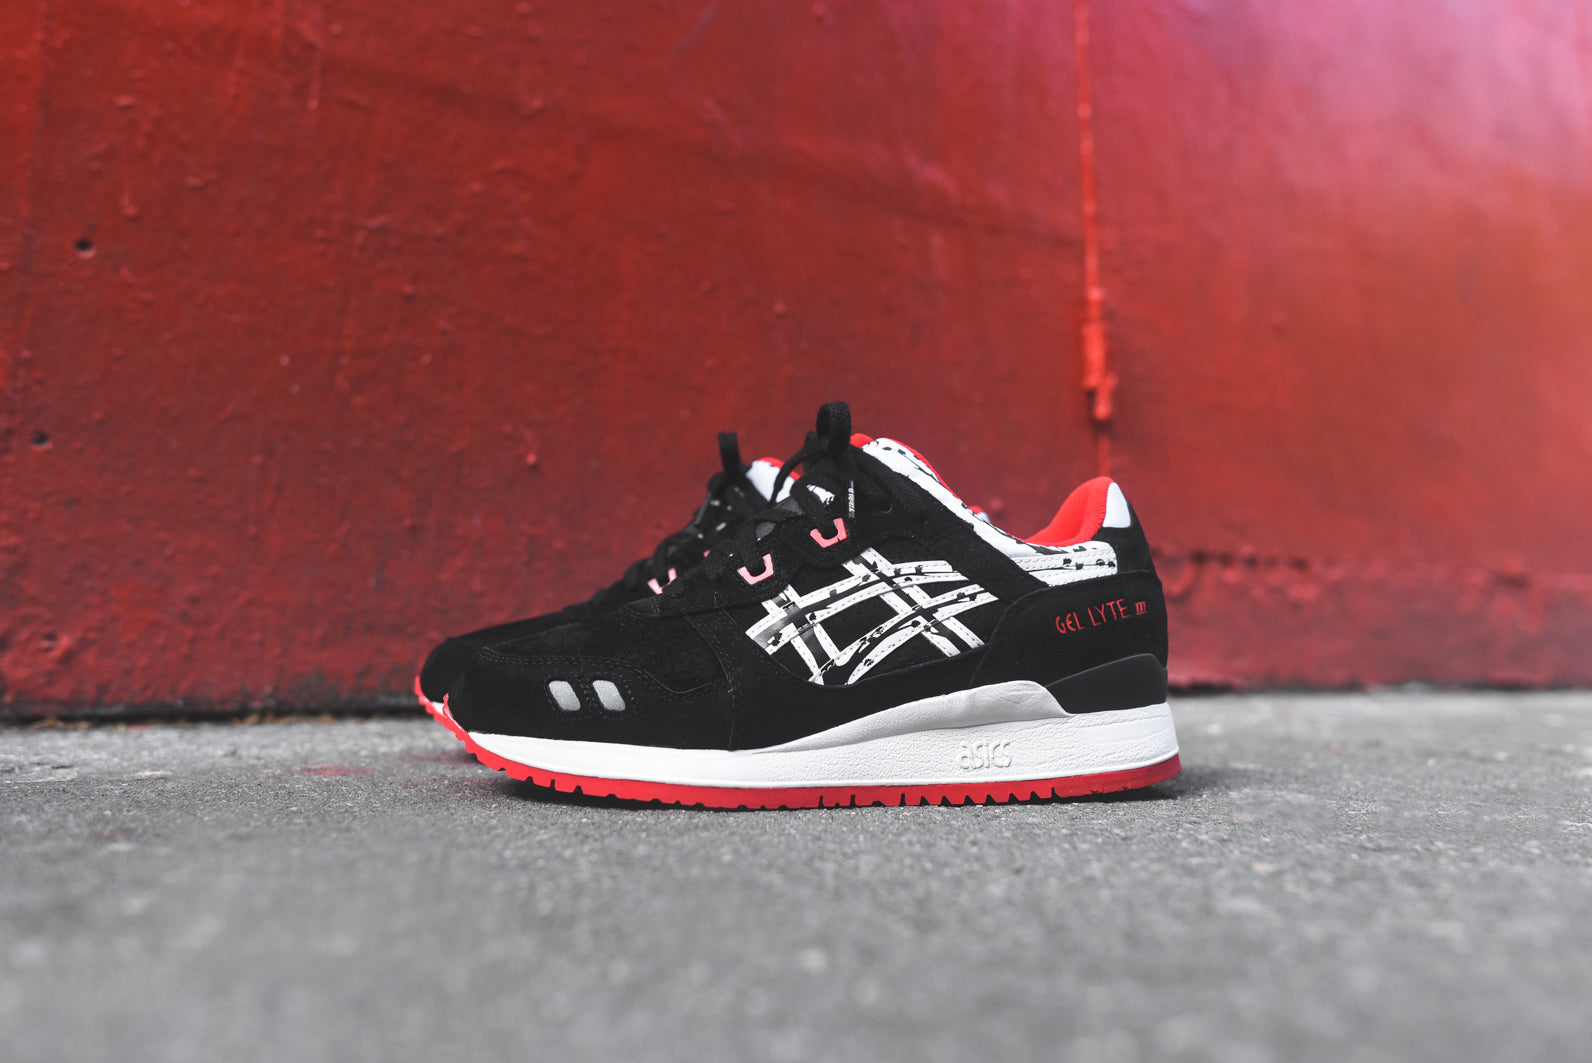 hot sale online 783ad cd1c1 Asics x Titolo Gel Lyte III -